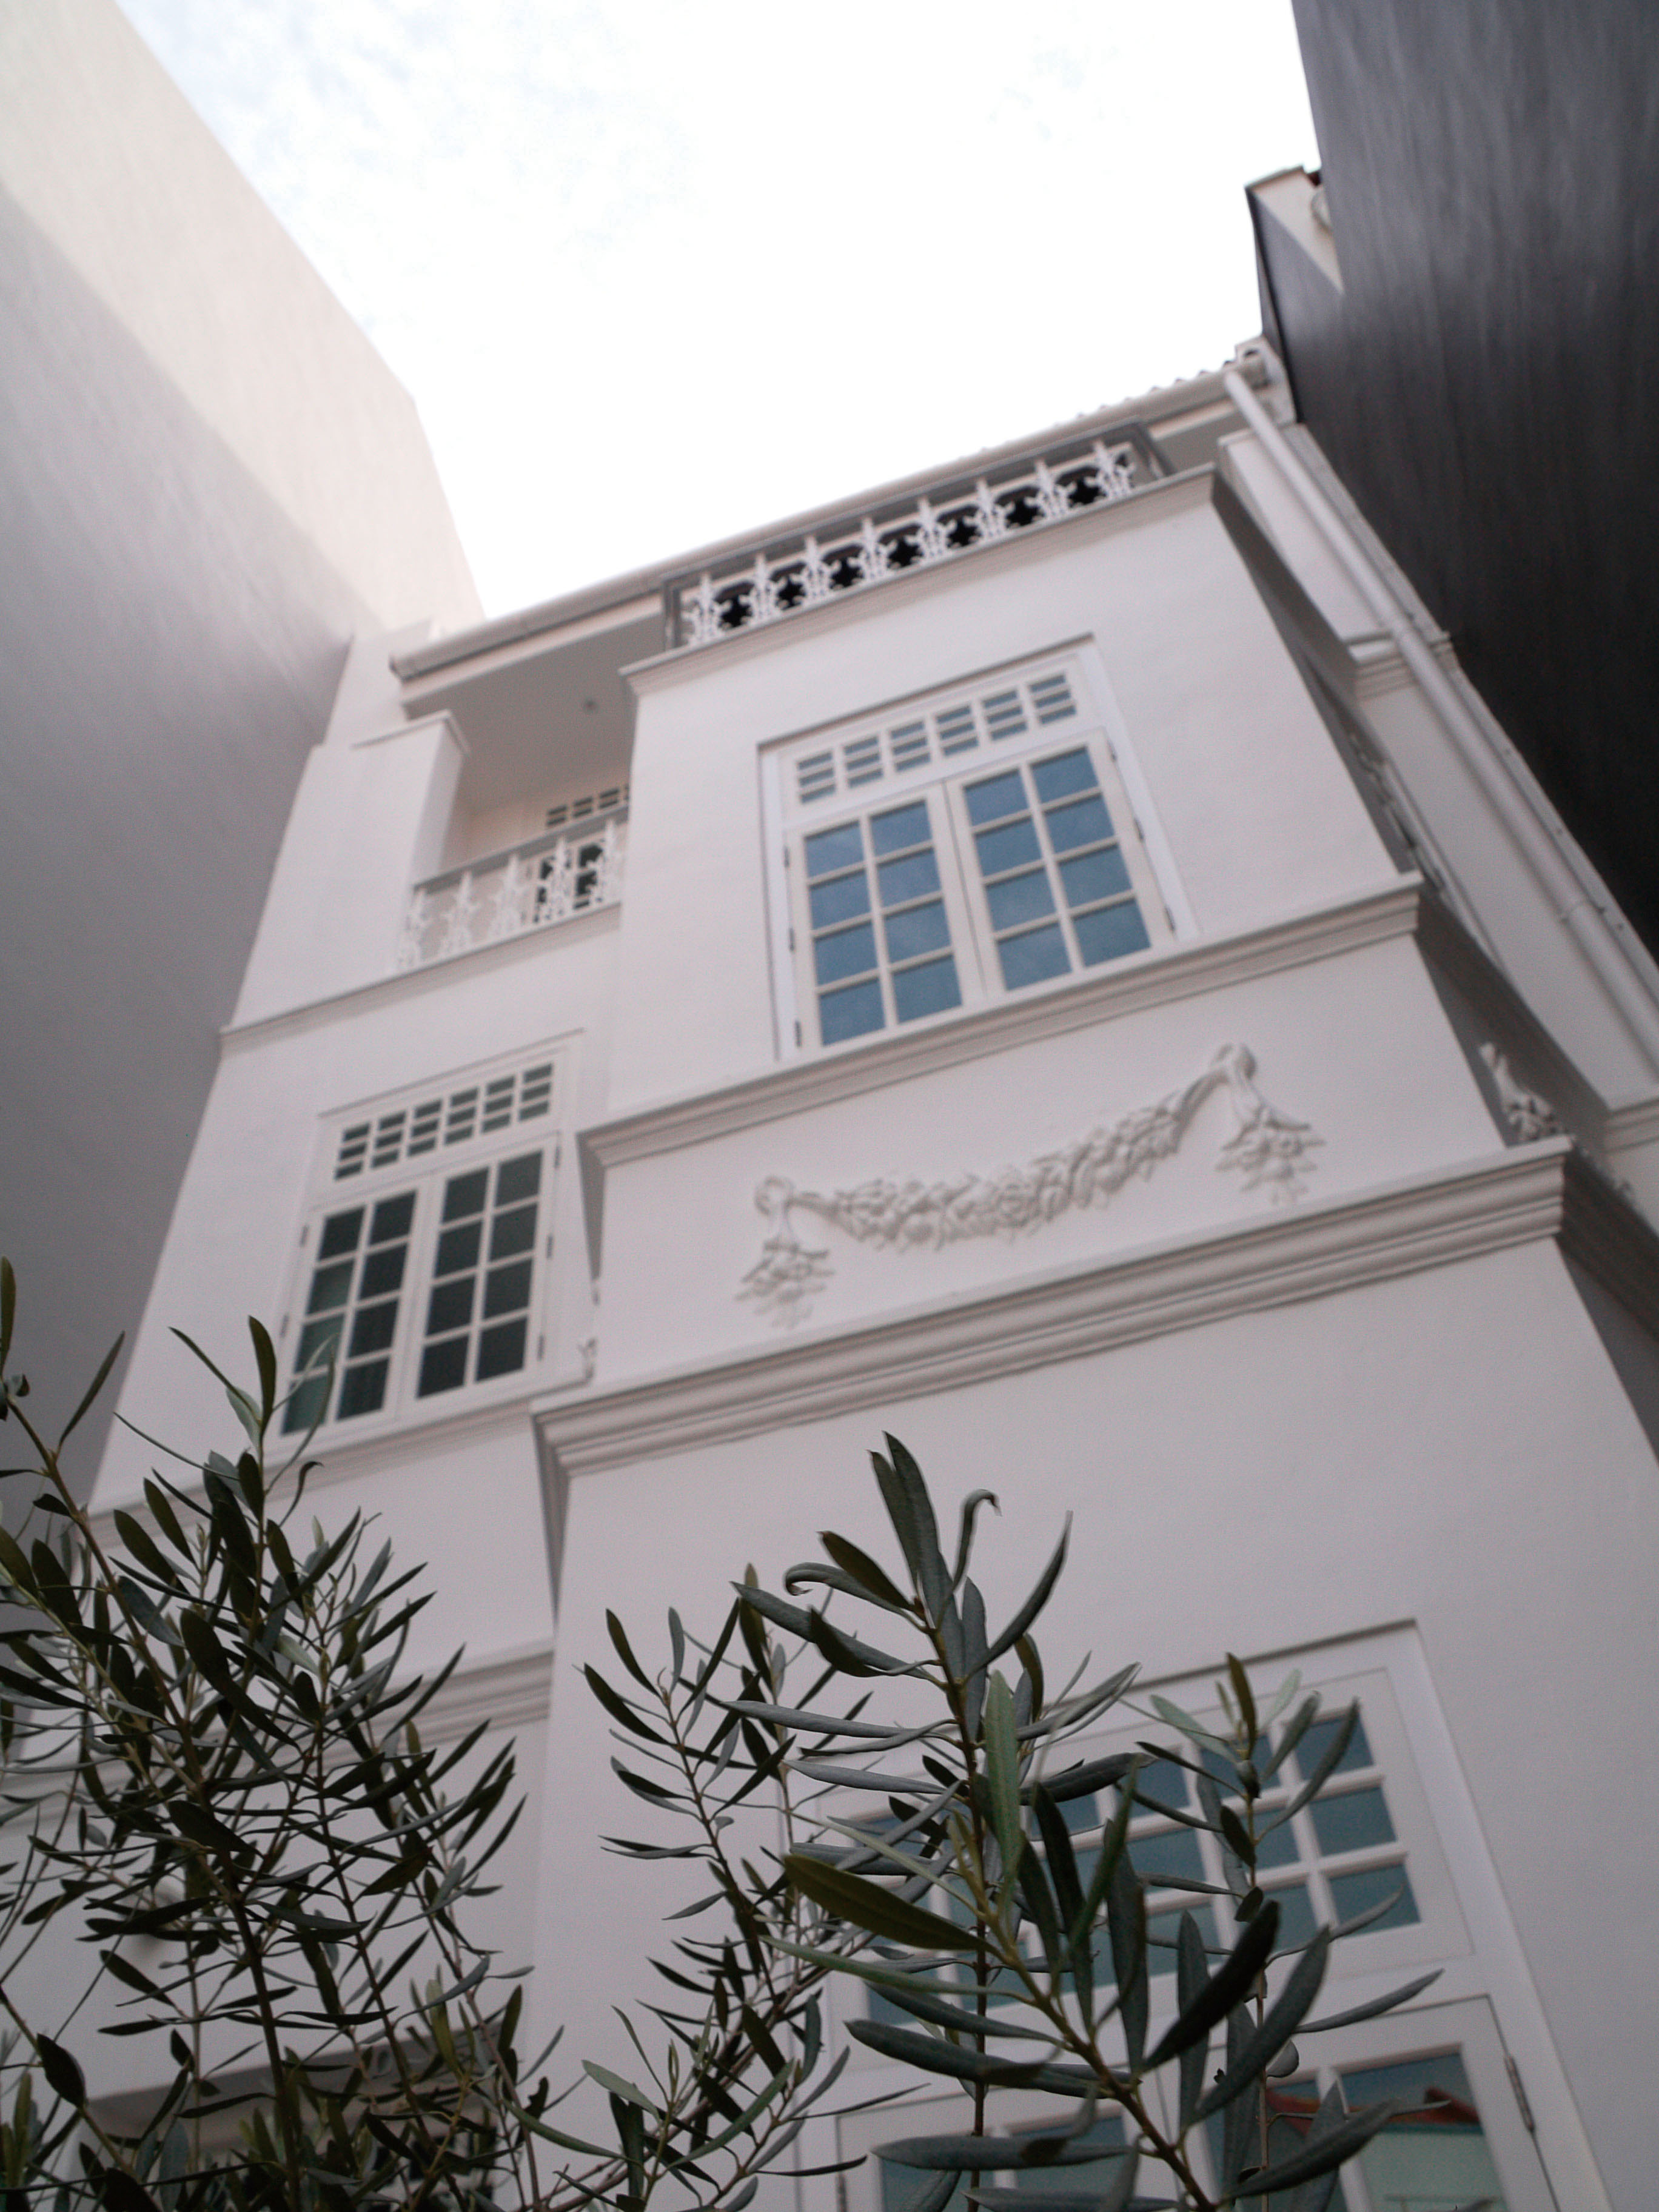 The facade of Restaurant Andre.